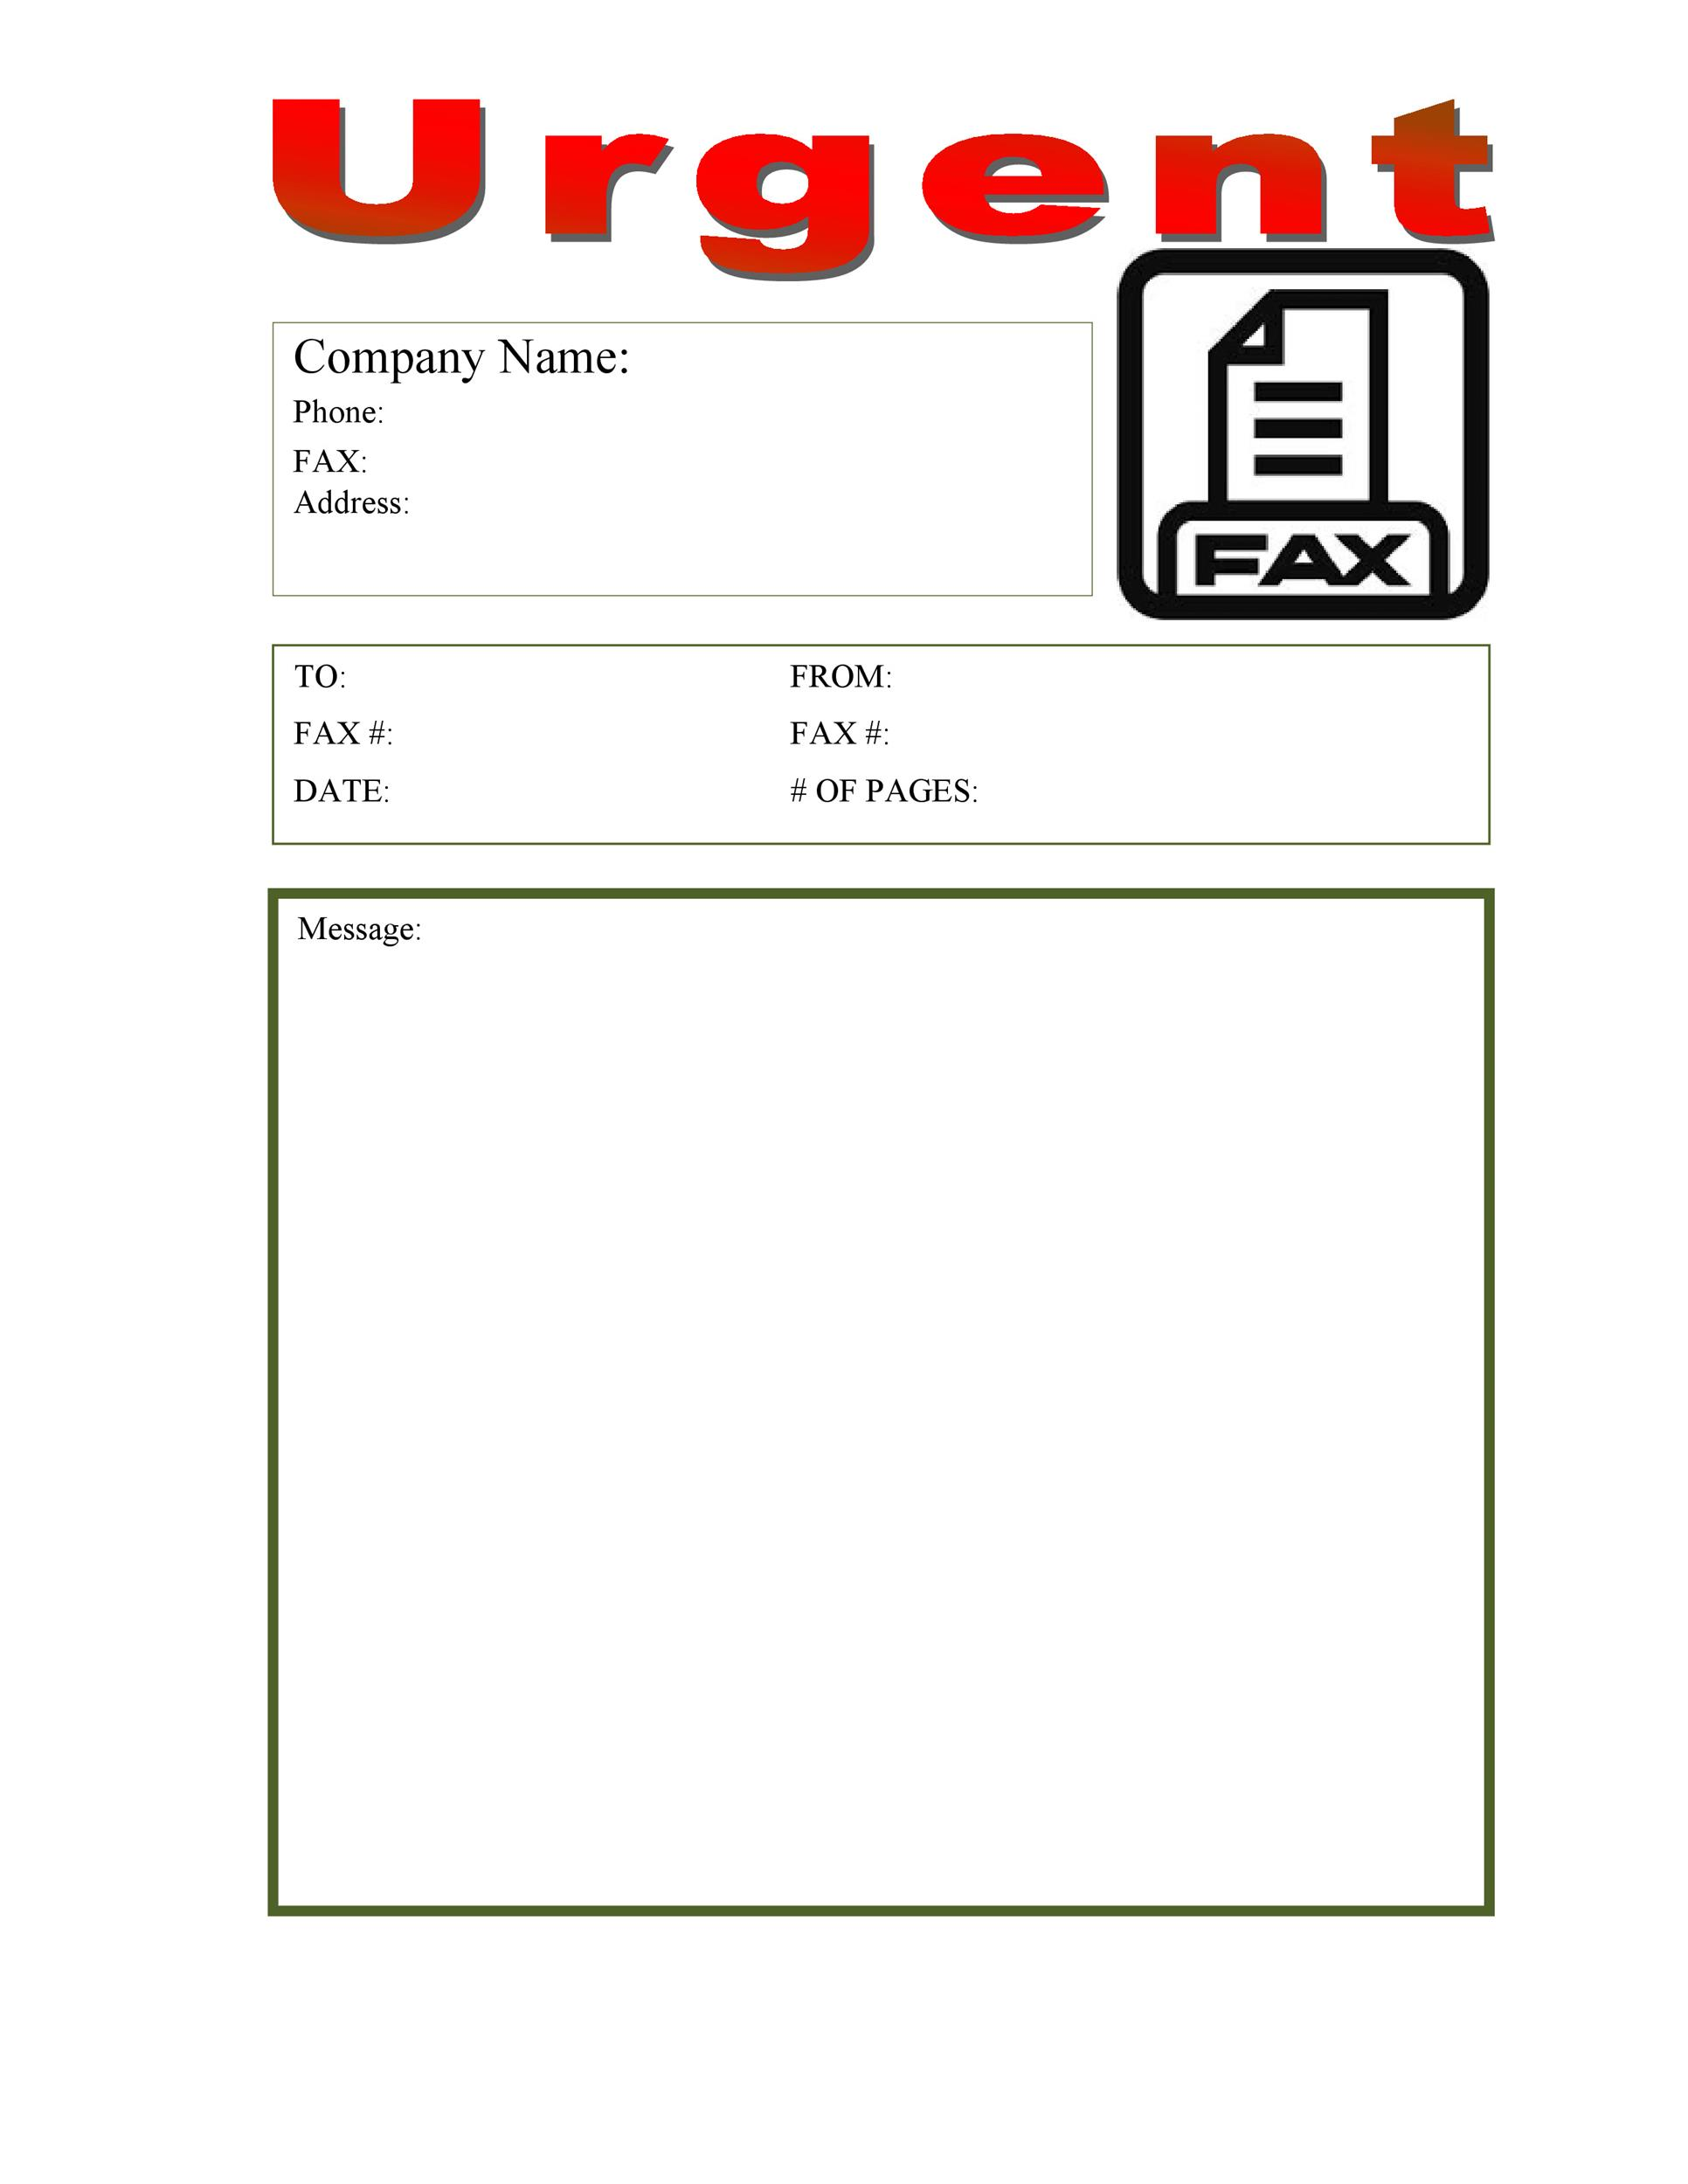 Fax Cover Sheet Template 35